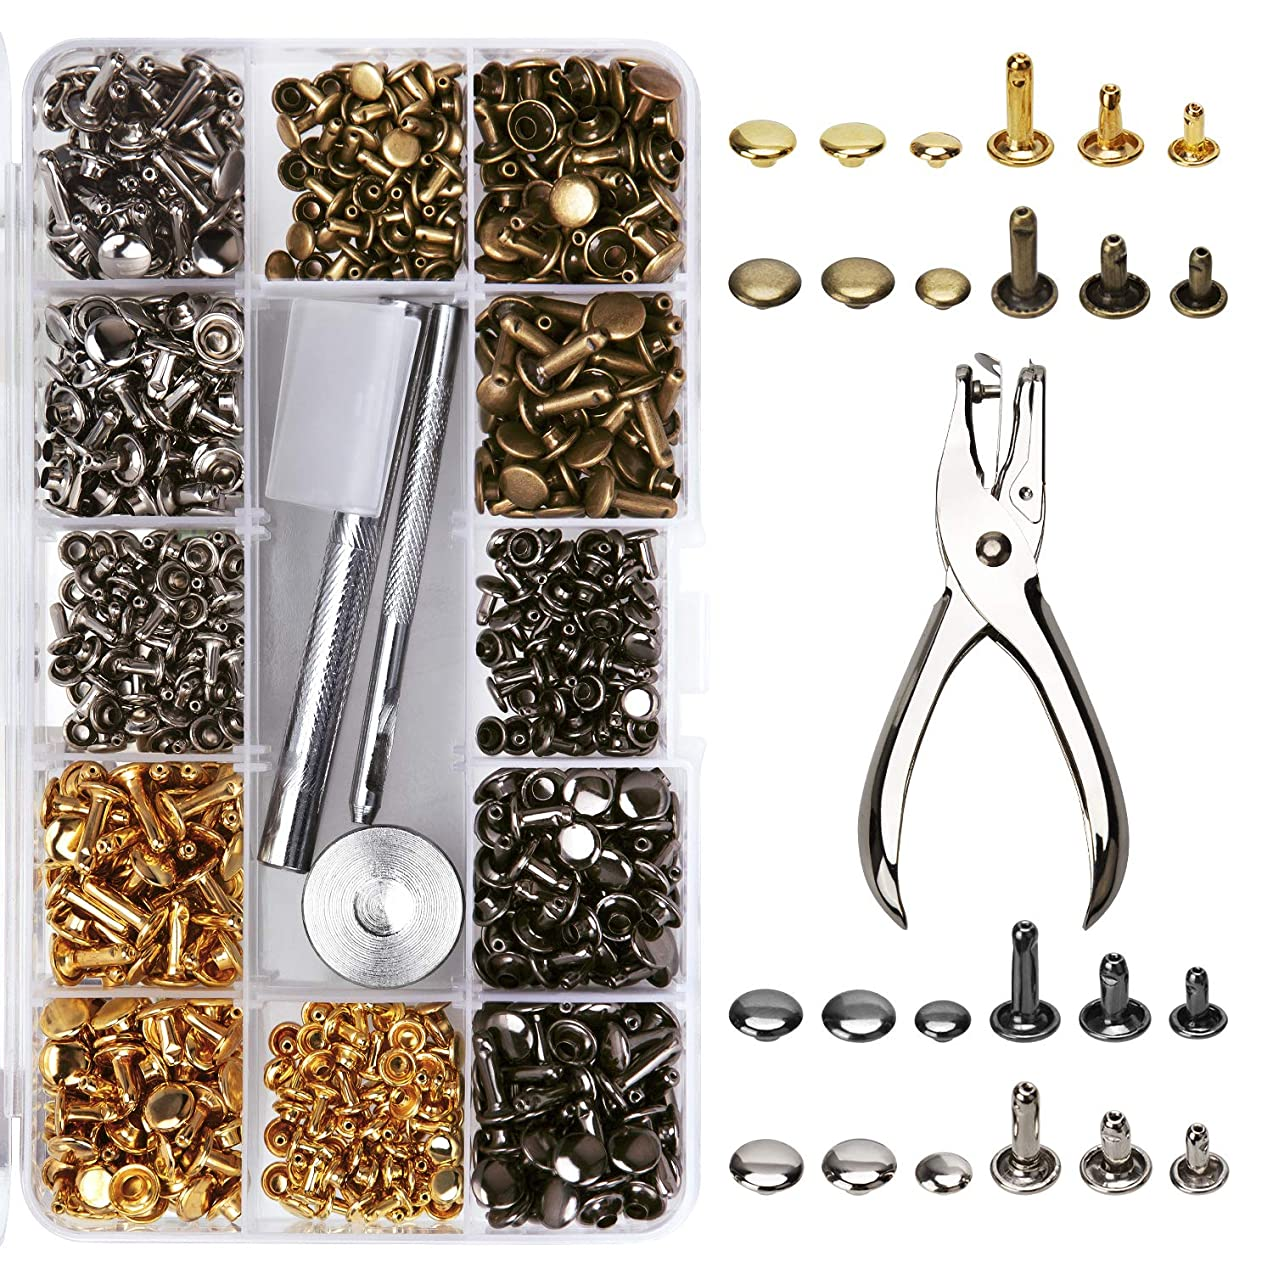 AIEX 360 Sets Leather Rivets with Punching Pliers and 3 Pieces Fixing Tools Kit for DIY Leather Crafts Decoration, Tubular, 3 Sizes 4 Colors